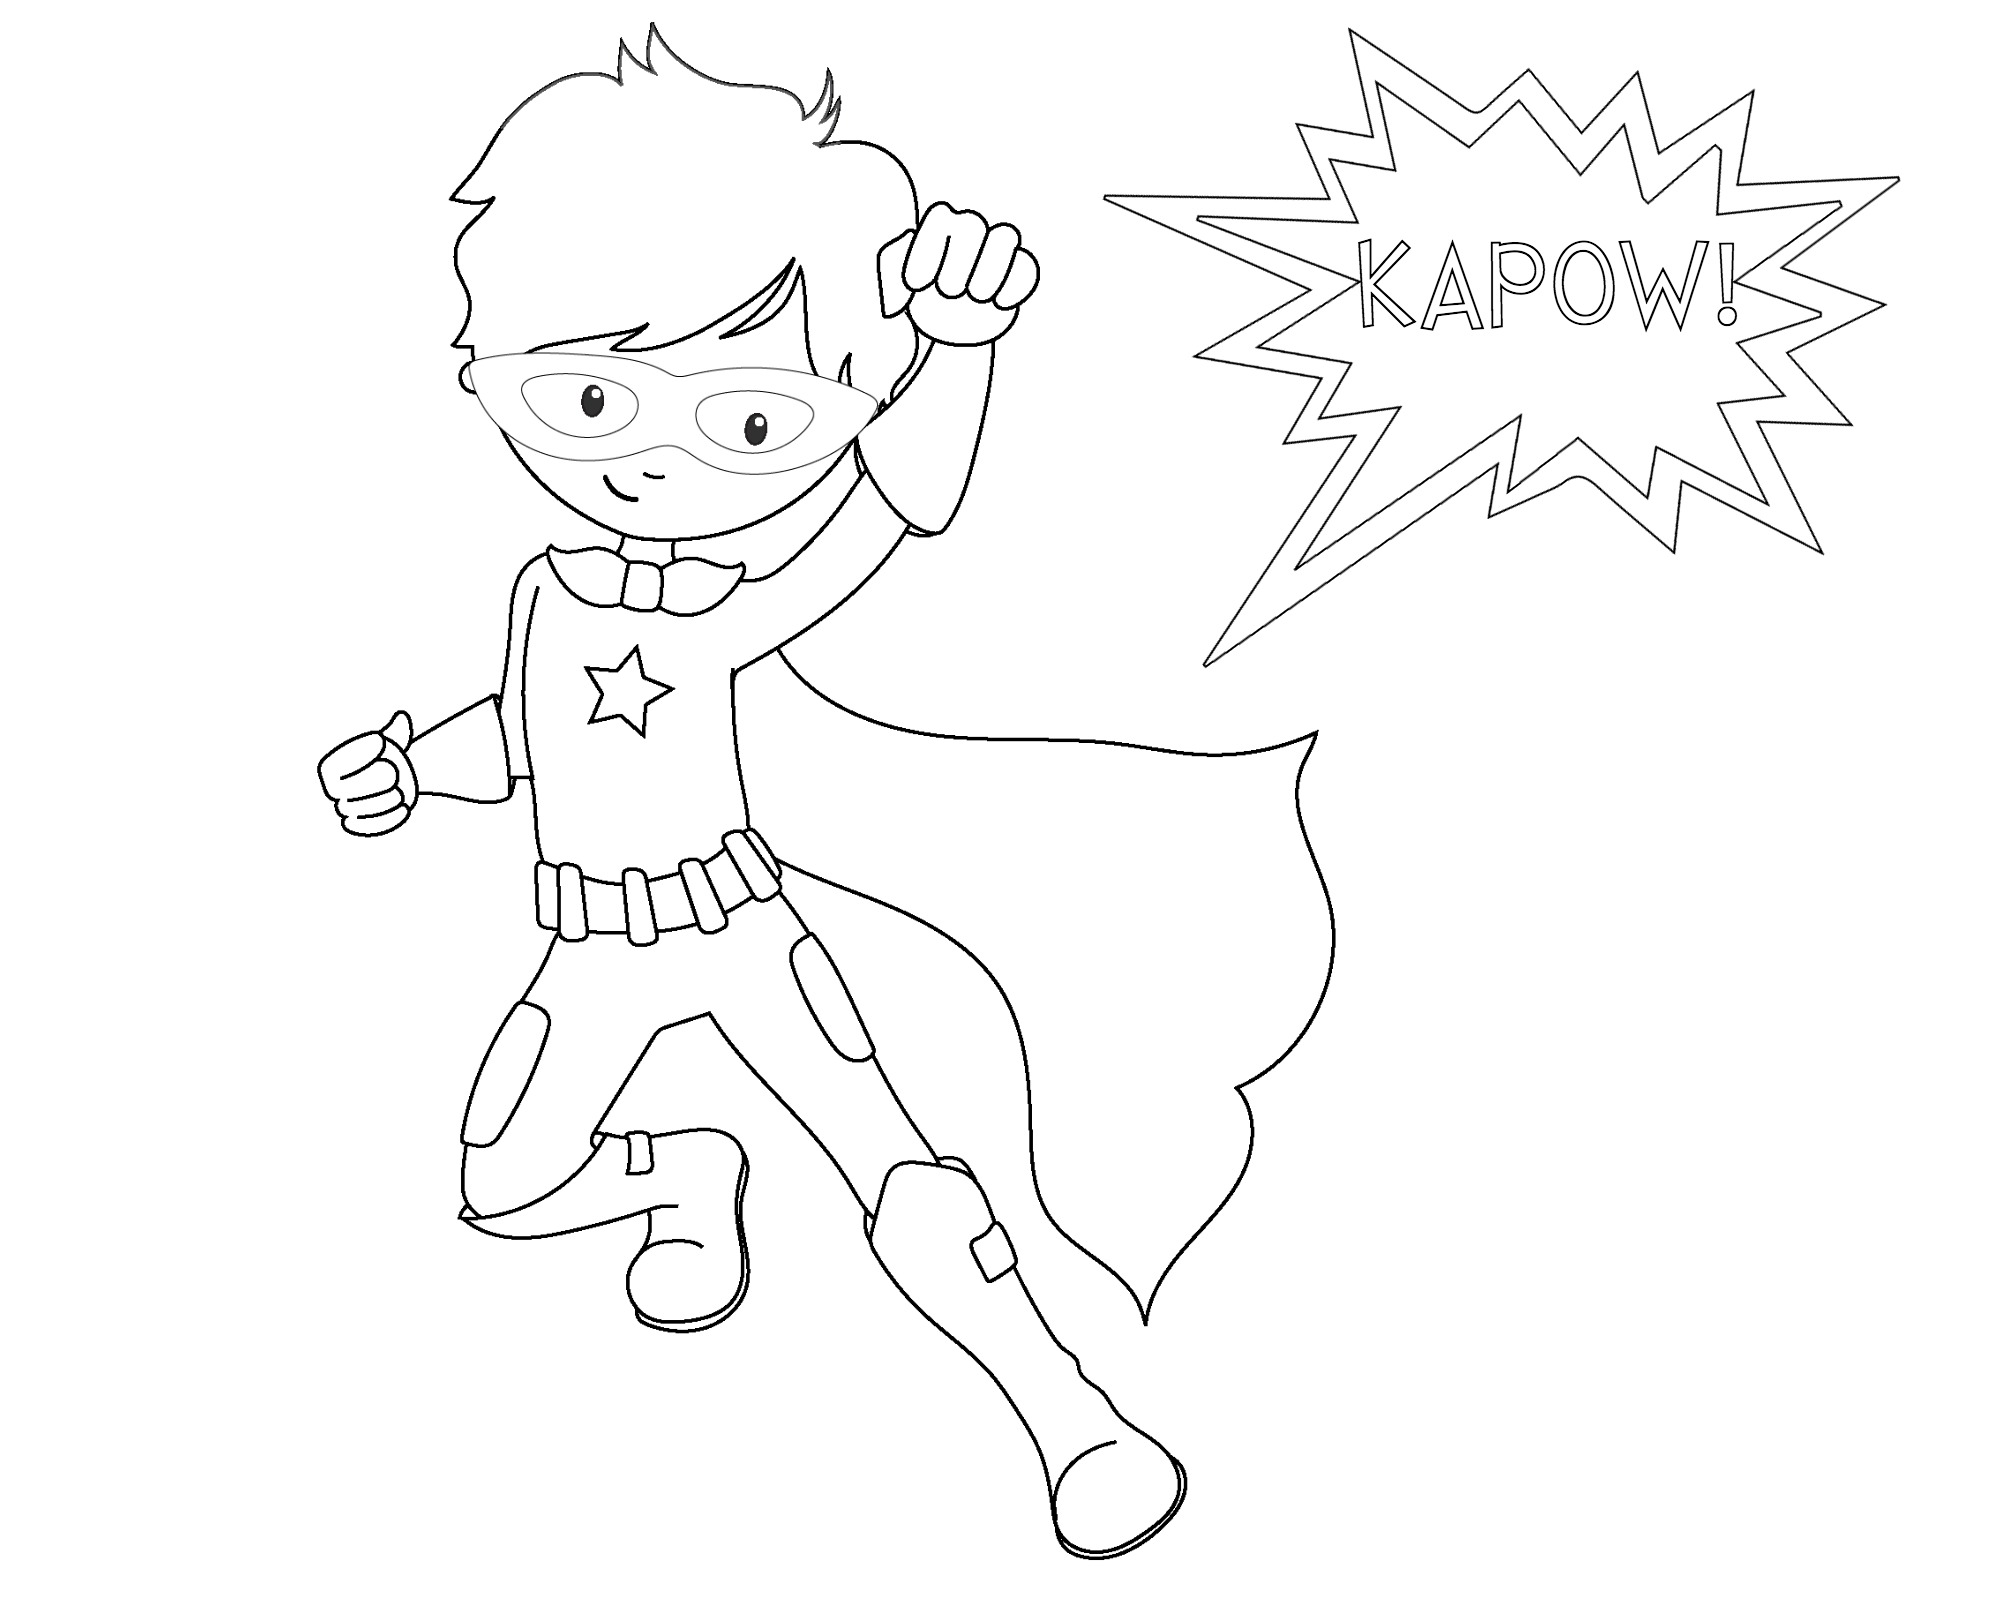 child superhero coloring pages - photo#15